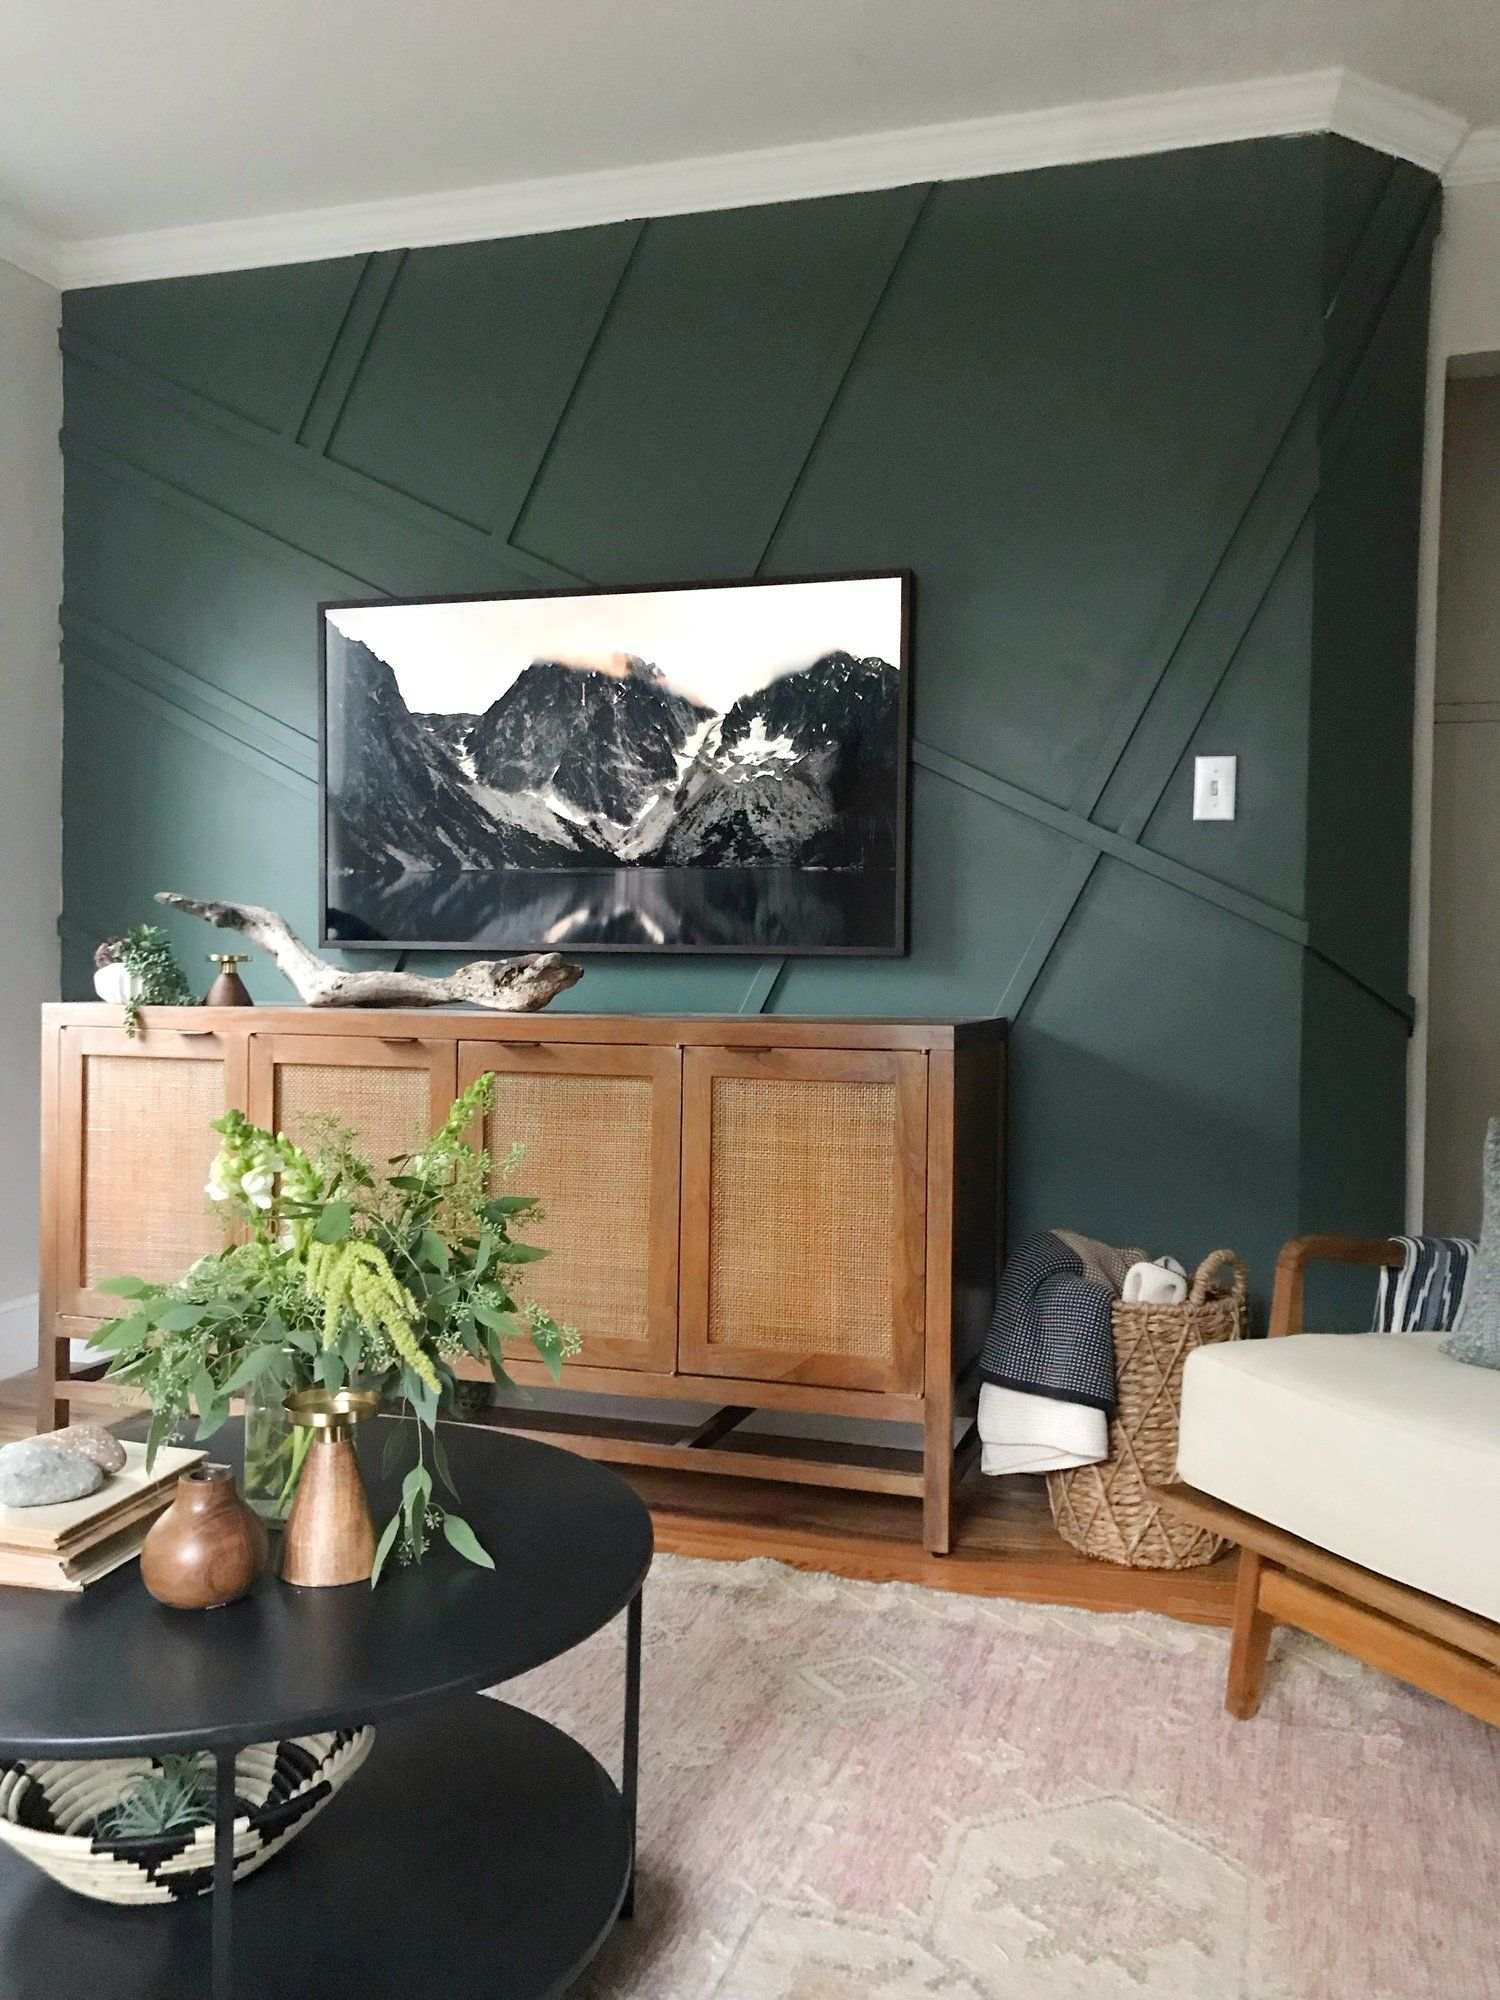 Living Room Redesign Reveal Pacific Cape Home Dark Green Living Room Decor Mi Green Living Room Decor Green Walls Living Room Accent Walls In Living Room